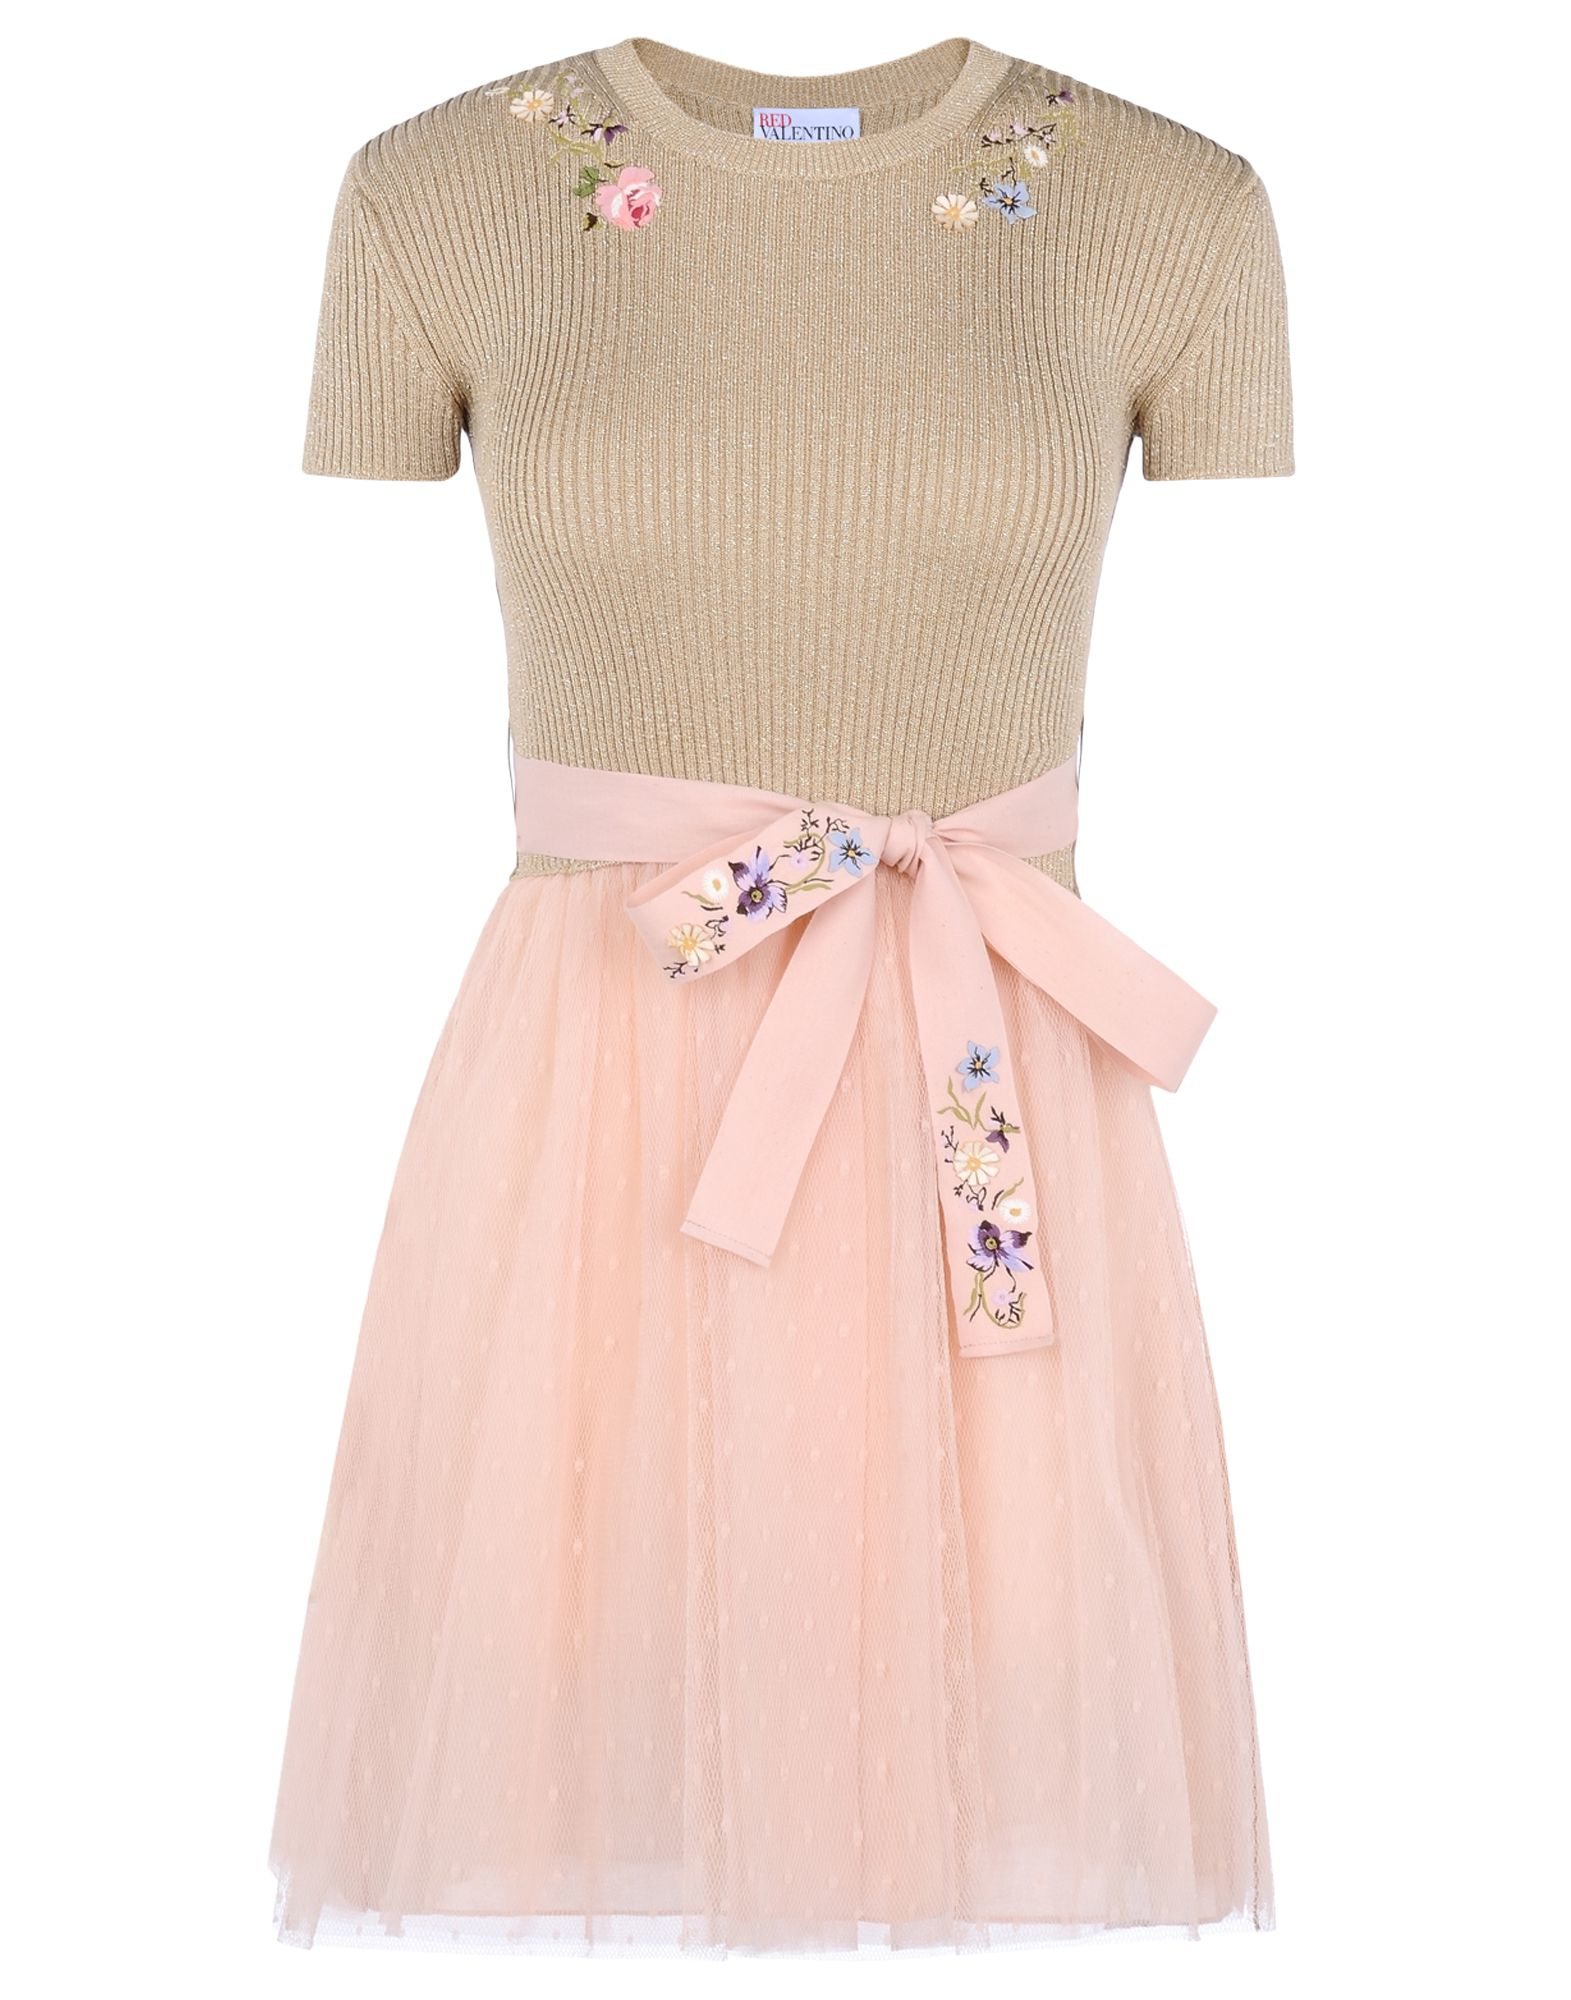 Red valentino tulle and cotton knit embroidered dress in